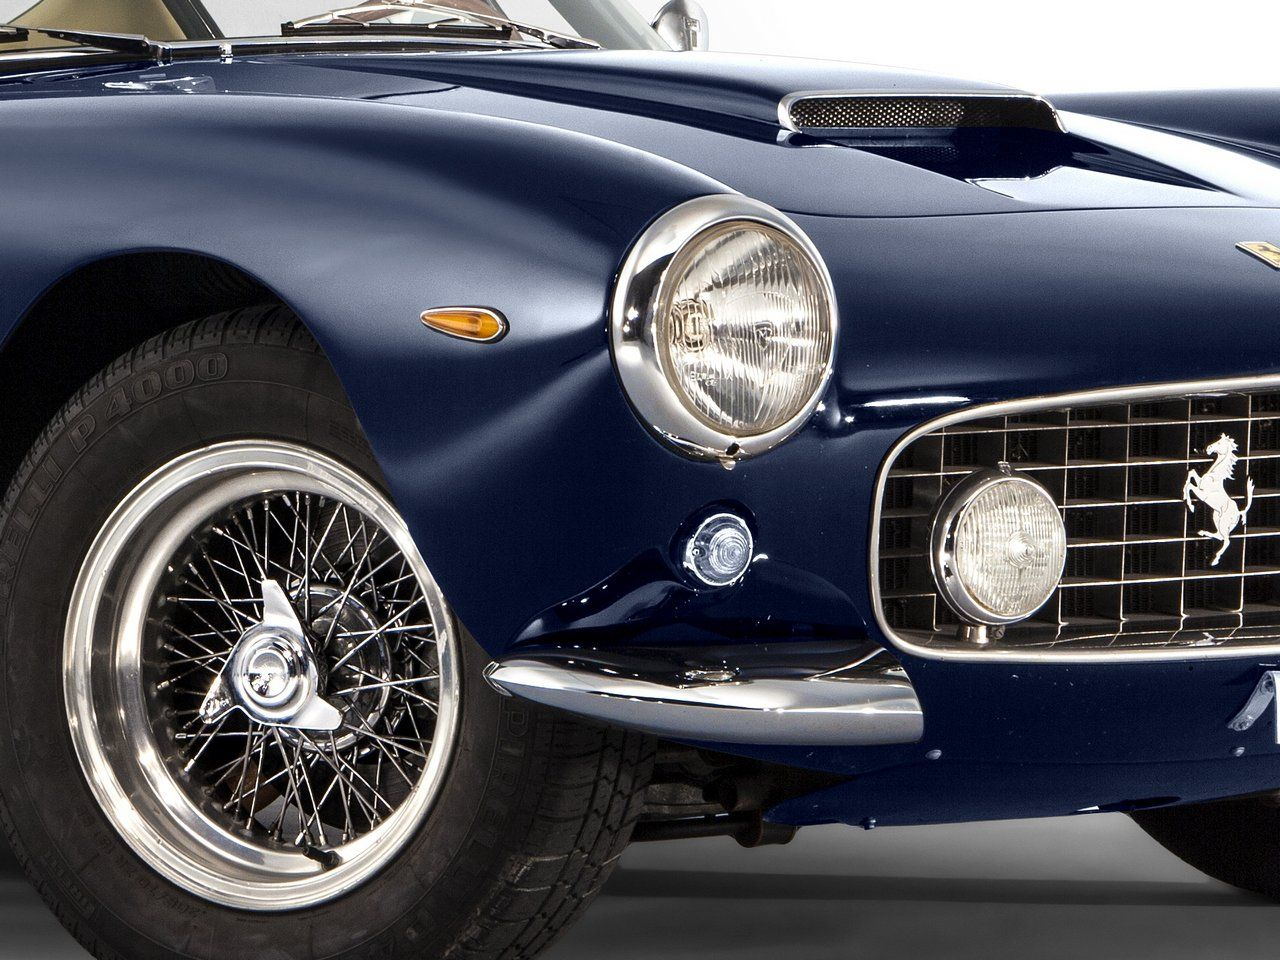 ferrari-250-gt-swb-4065gt-artcurial-auction_0-100_3